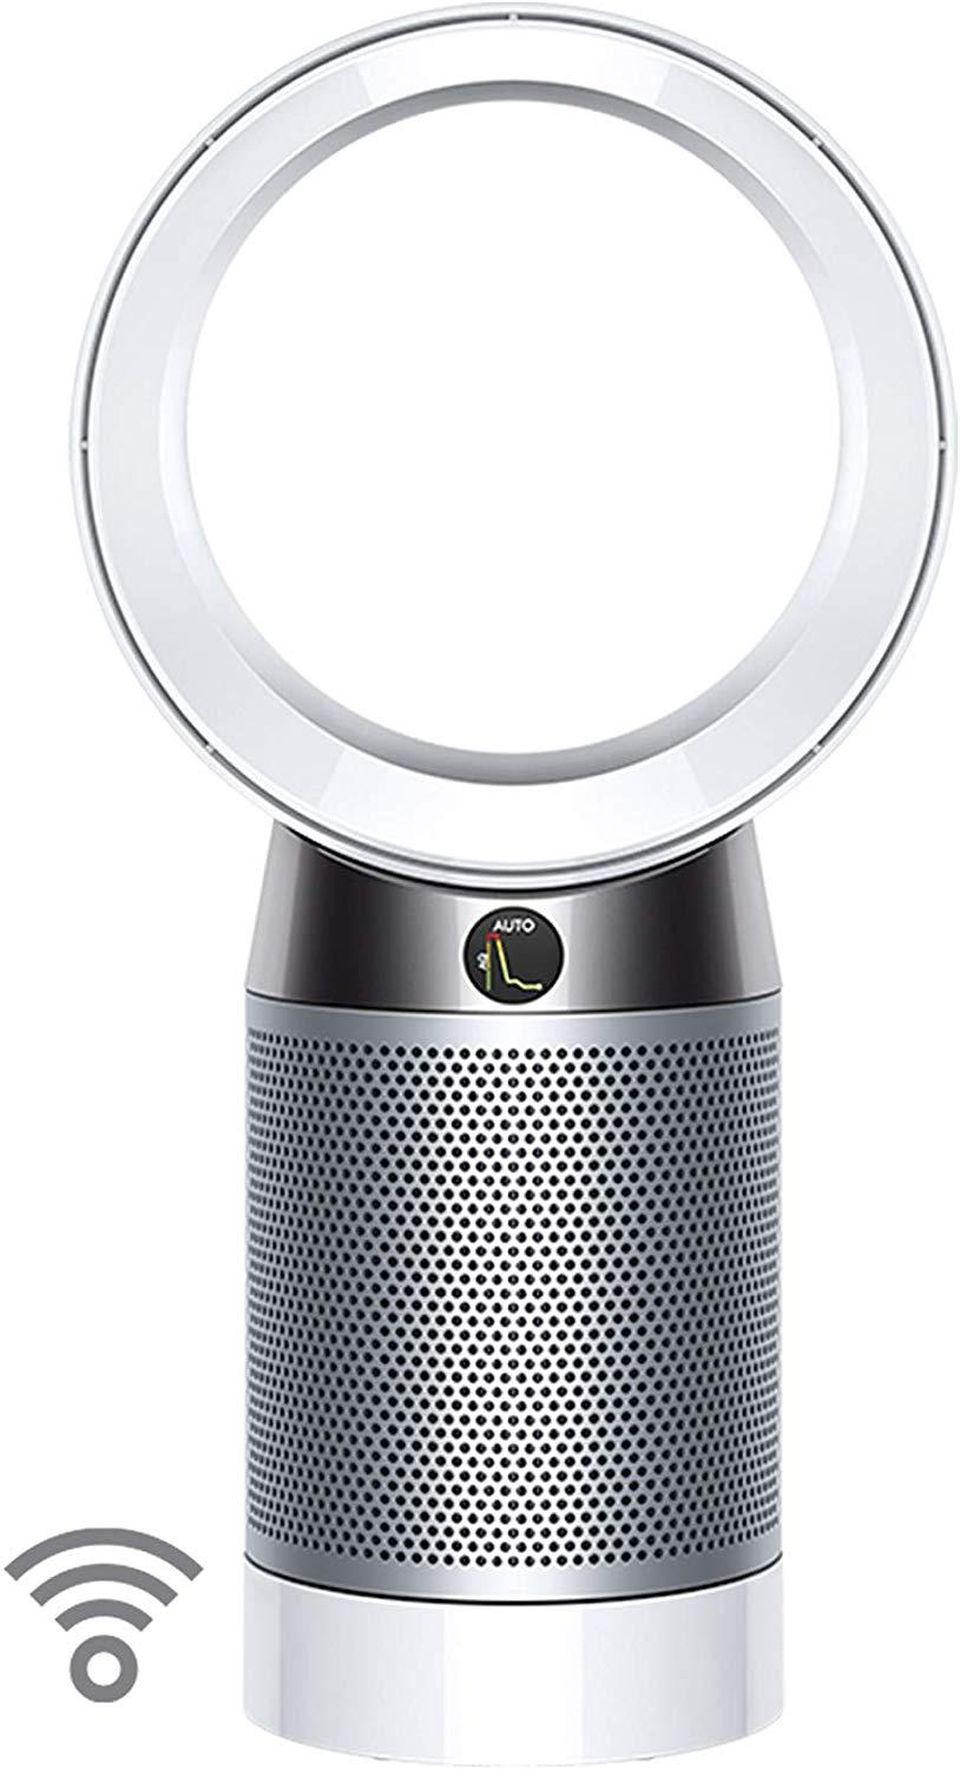 Dyson Pure Cool, DP04-HEPA Air Purifier and Fan WiFi-Enabled, Large Rooms, Automatically Removes Allergens, Pollutants, Dust, Mold, VOCs, White/Silver